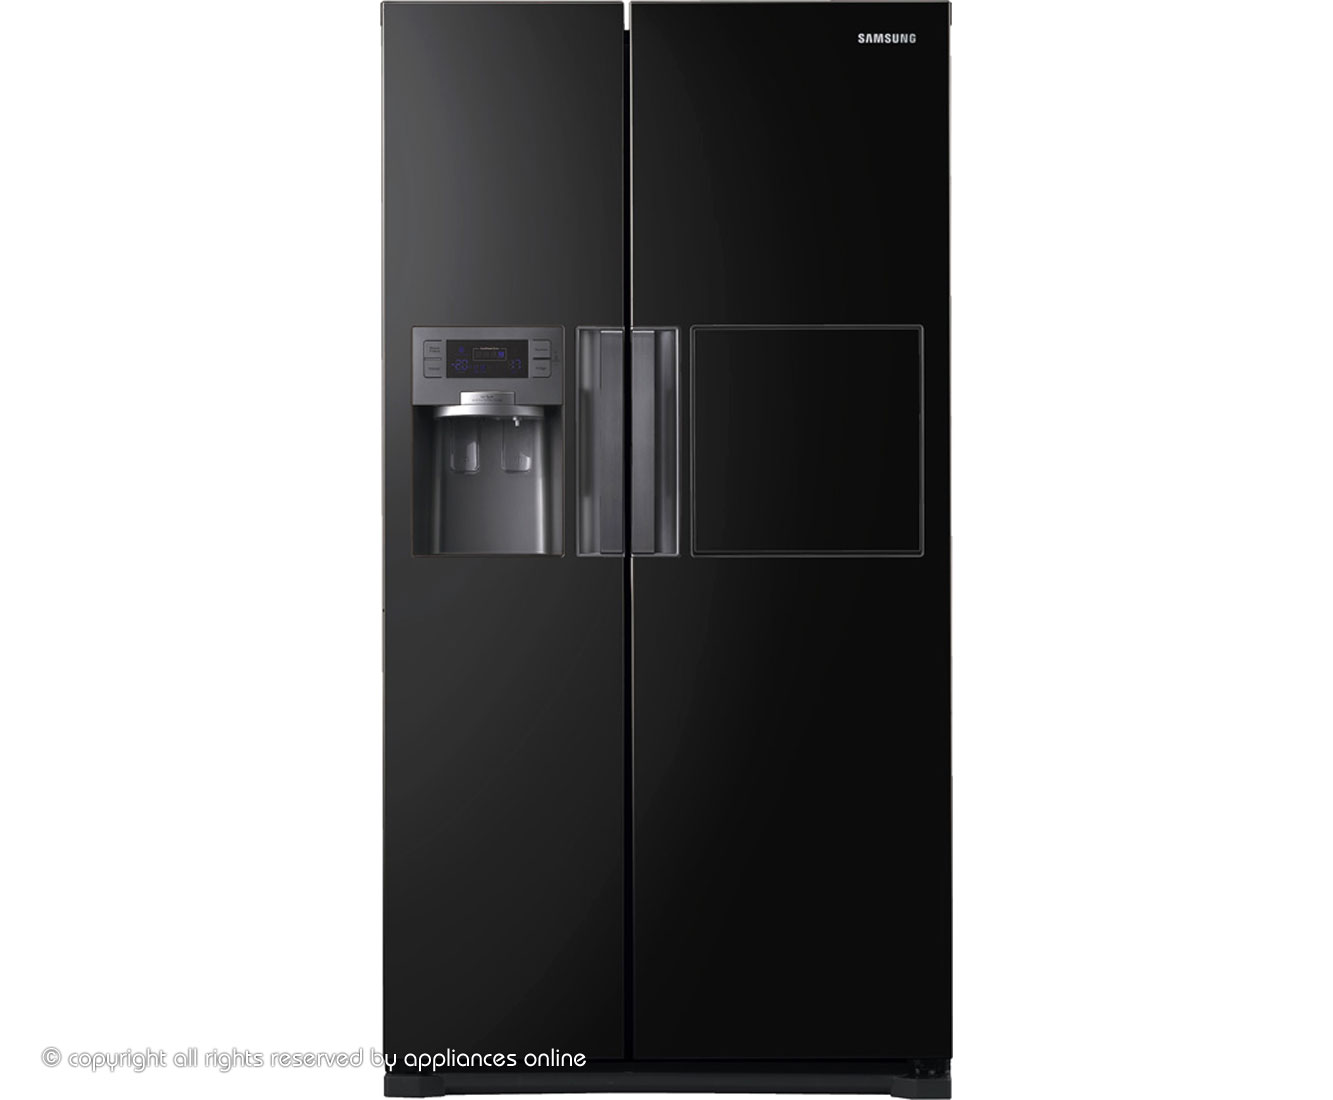 Samsung H-Series RSH7ZNBP American Fridge Freezer - Black